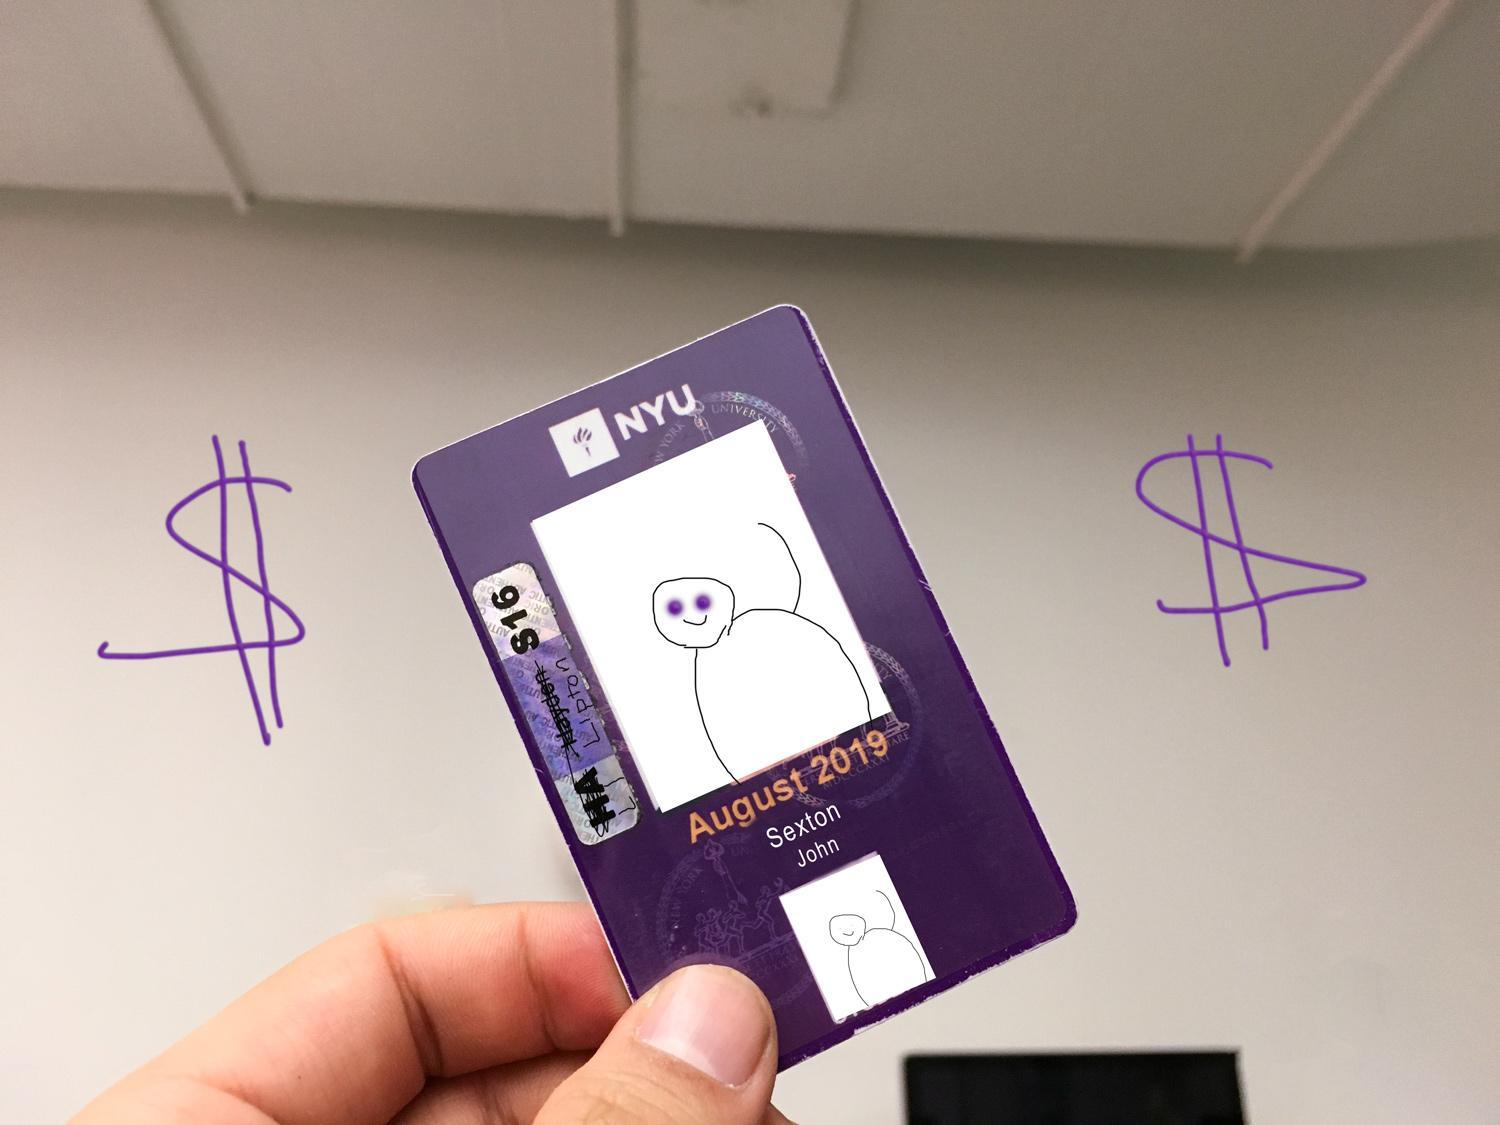 NYU IDs will see an increase in use now that students are now paid by campus cash.